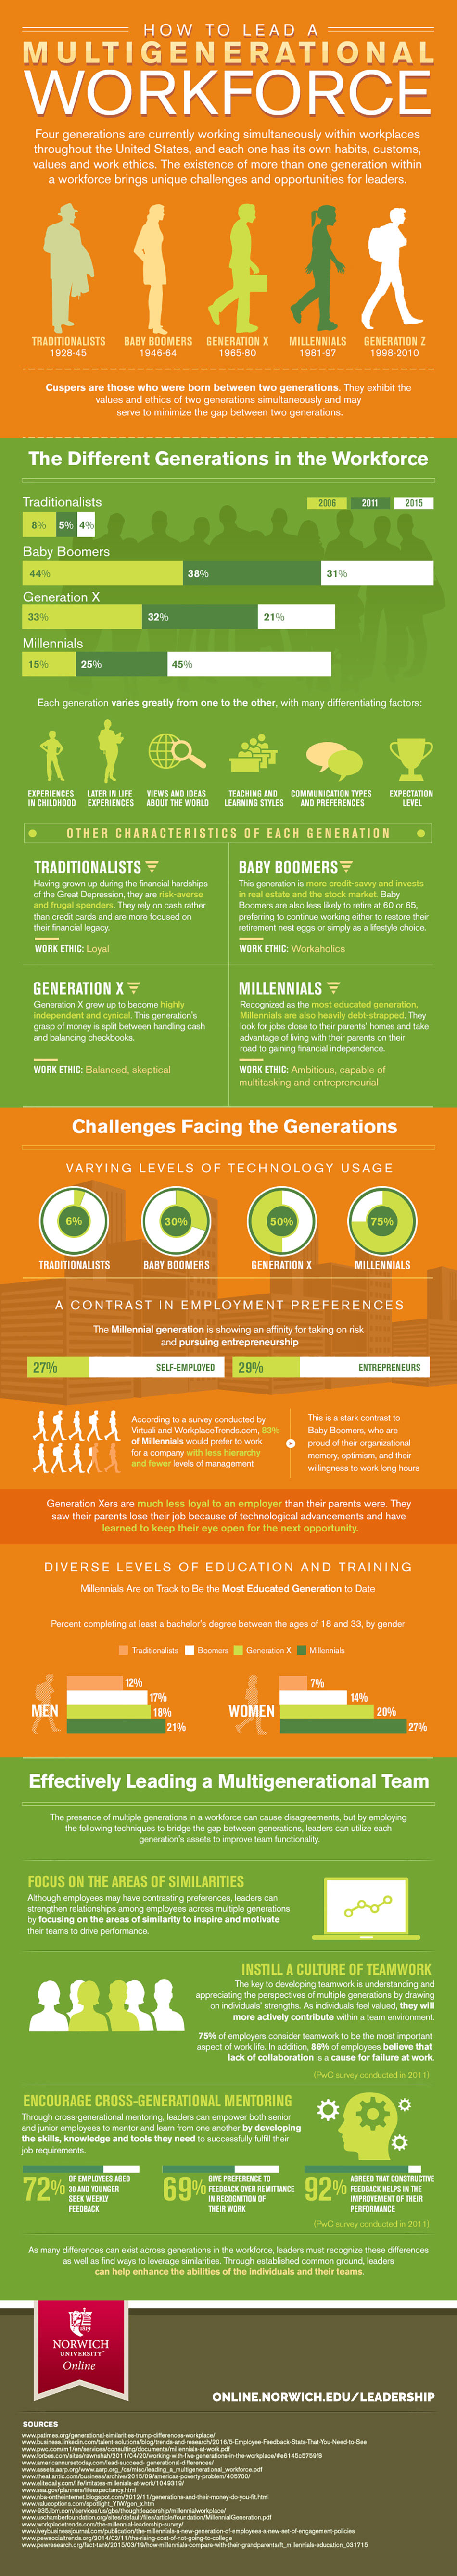 infographic on todays multigenerational workforce